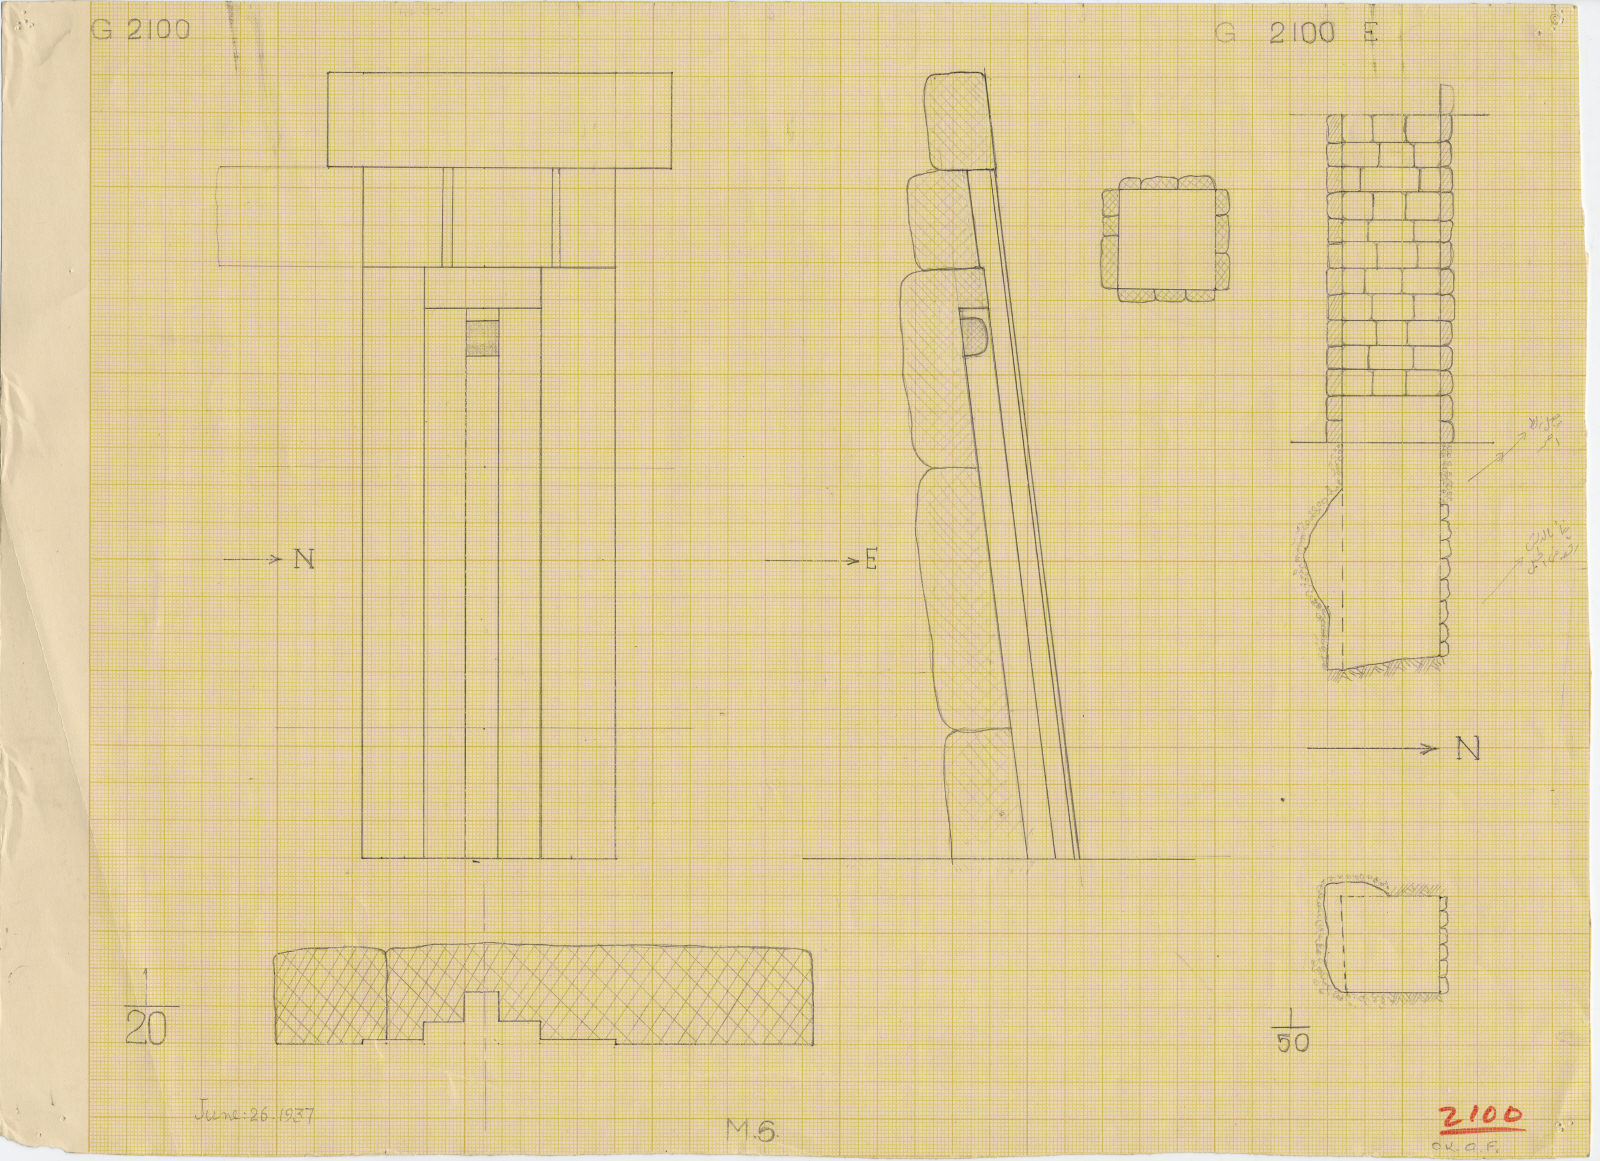 Maps and plans: G 2100, Shaft E and false door